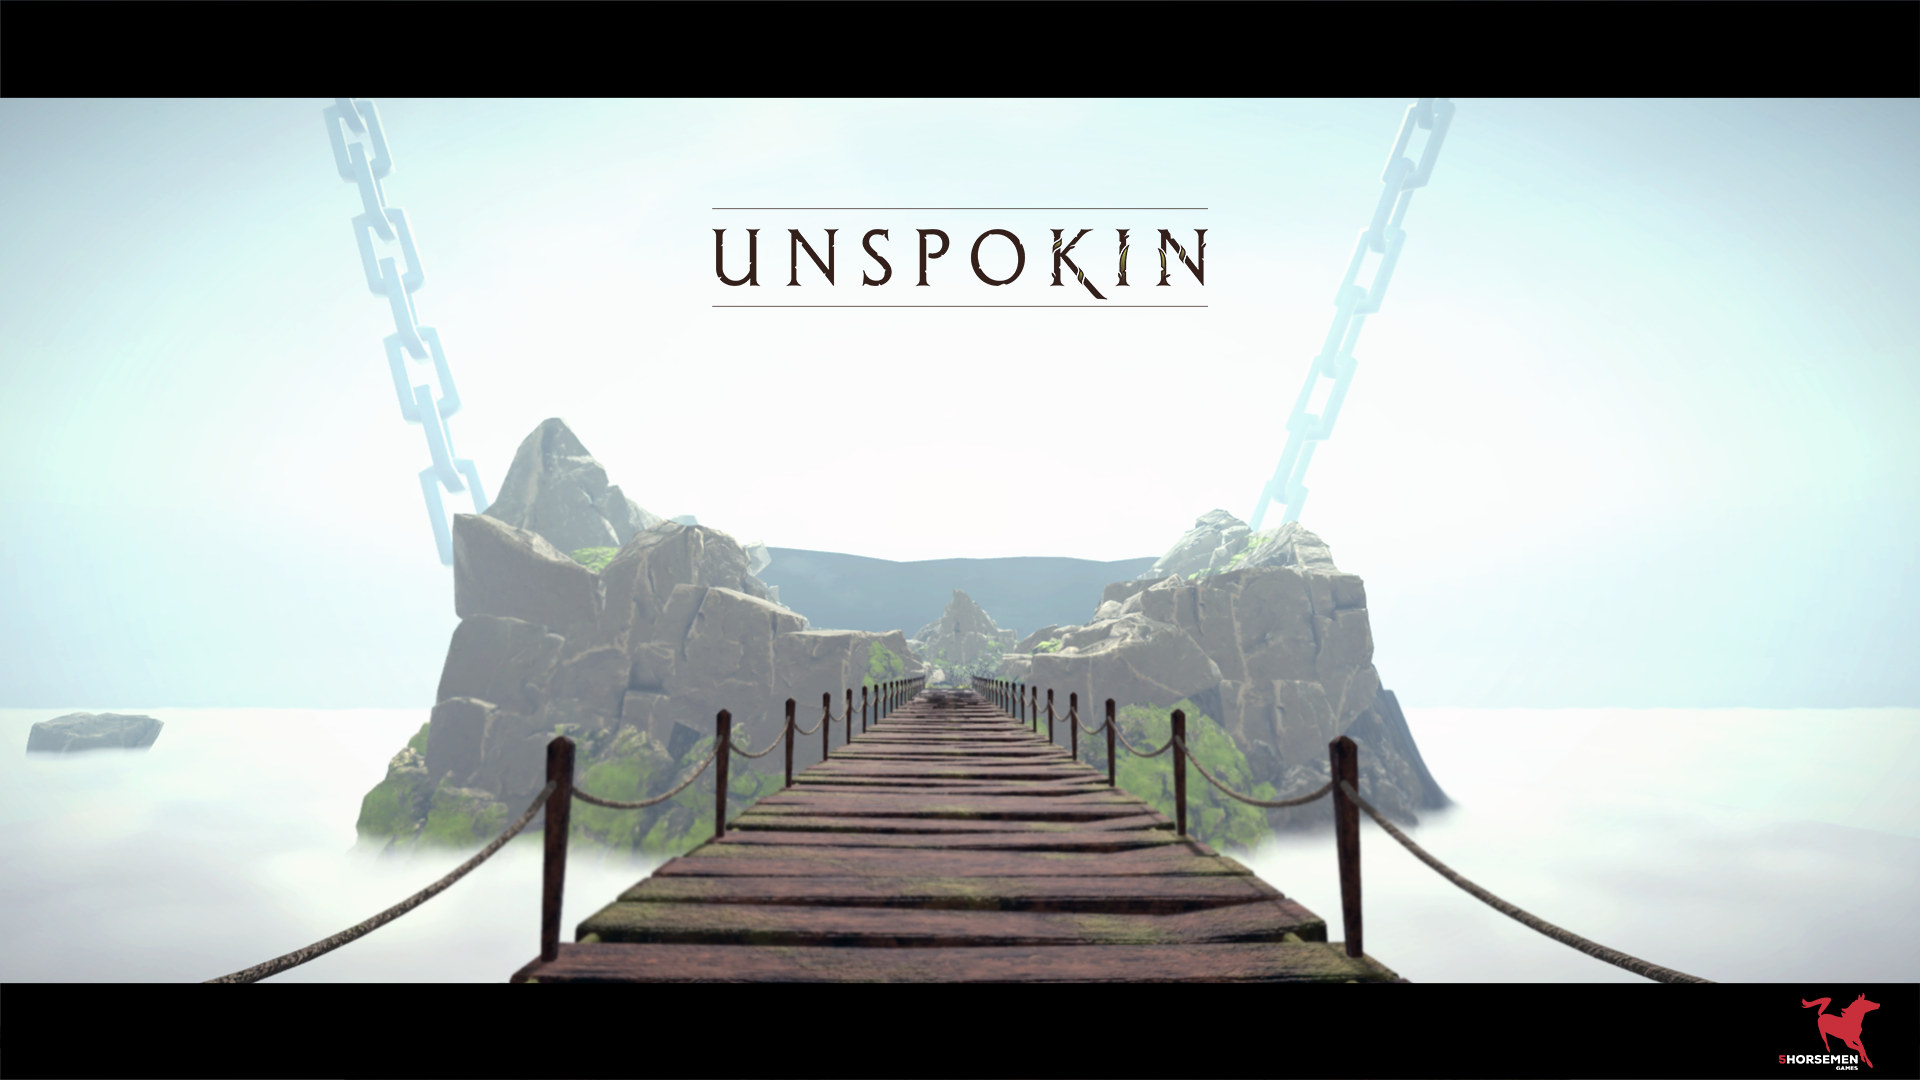 UNSPOKIN - 8 MONTH LONG CAPSTONE